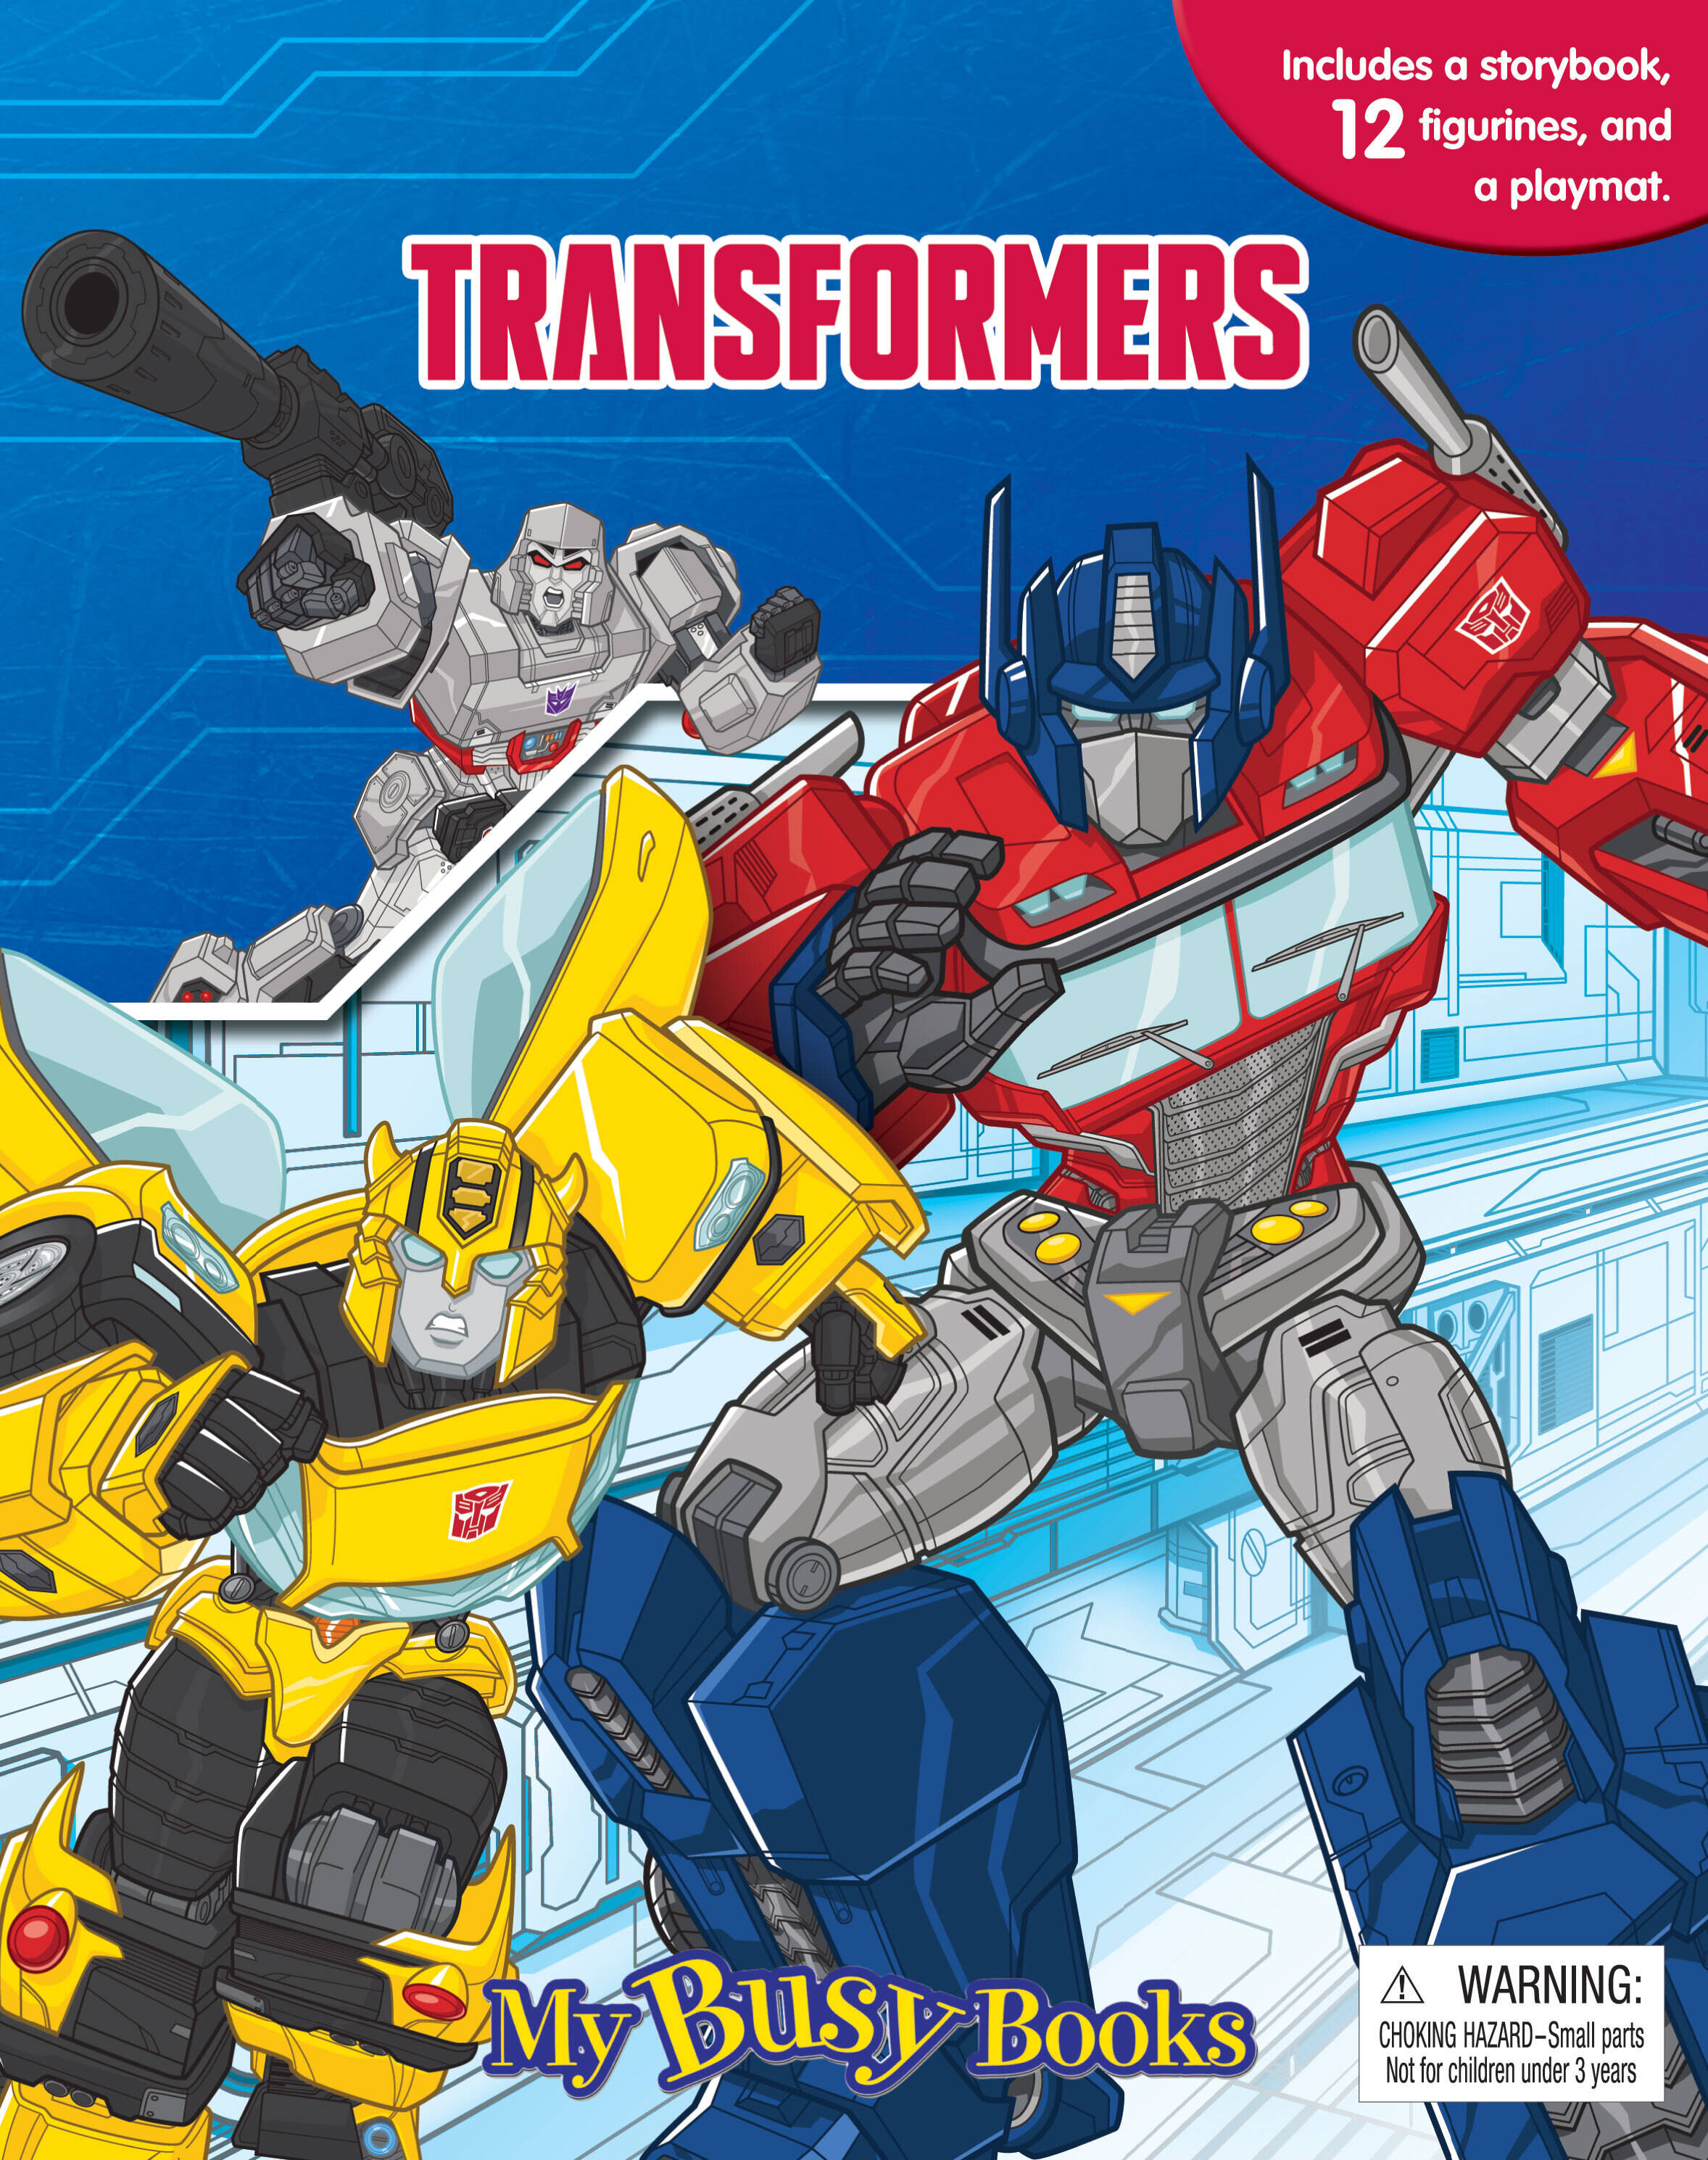 Transformers - My Busy Book